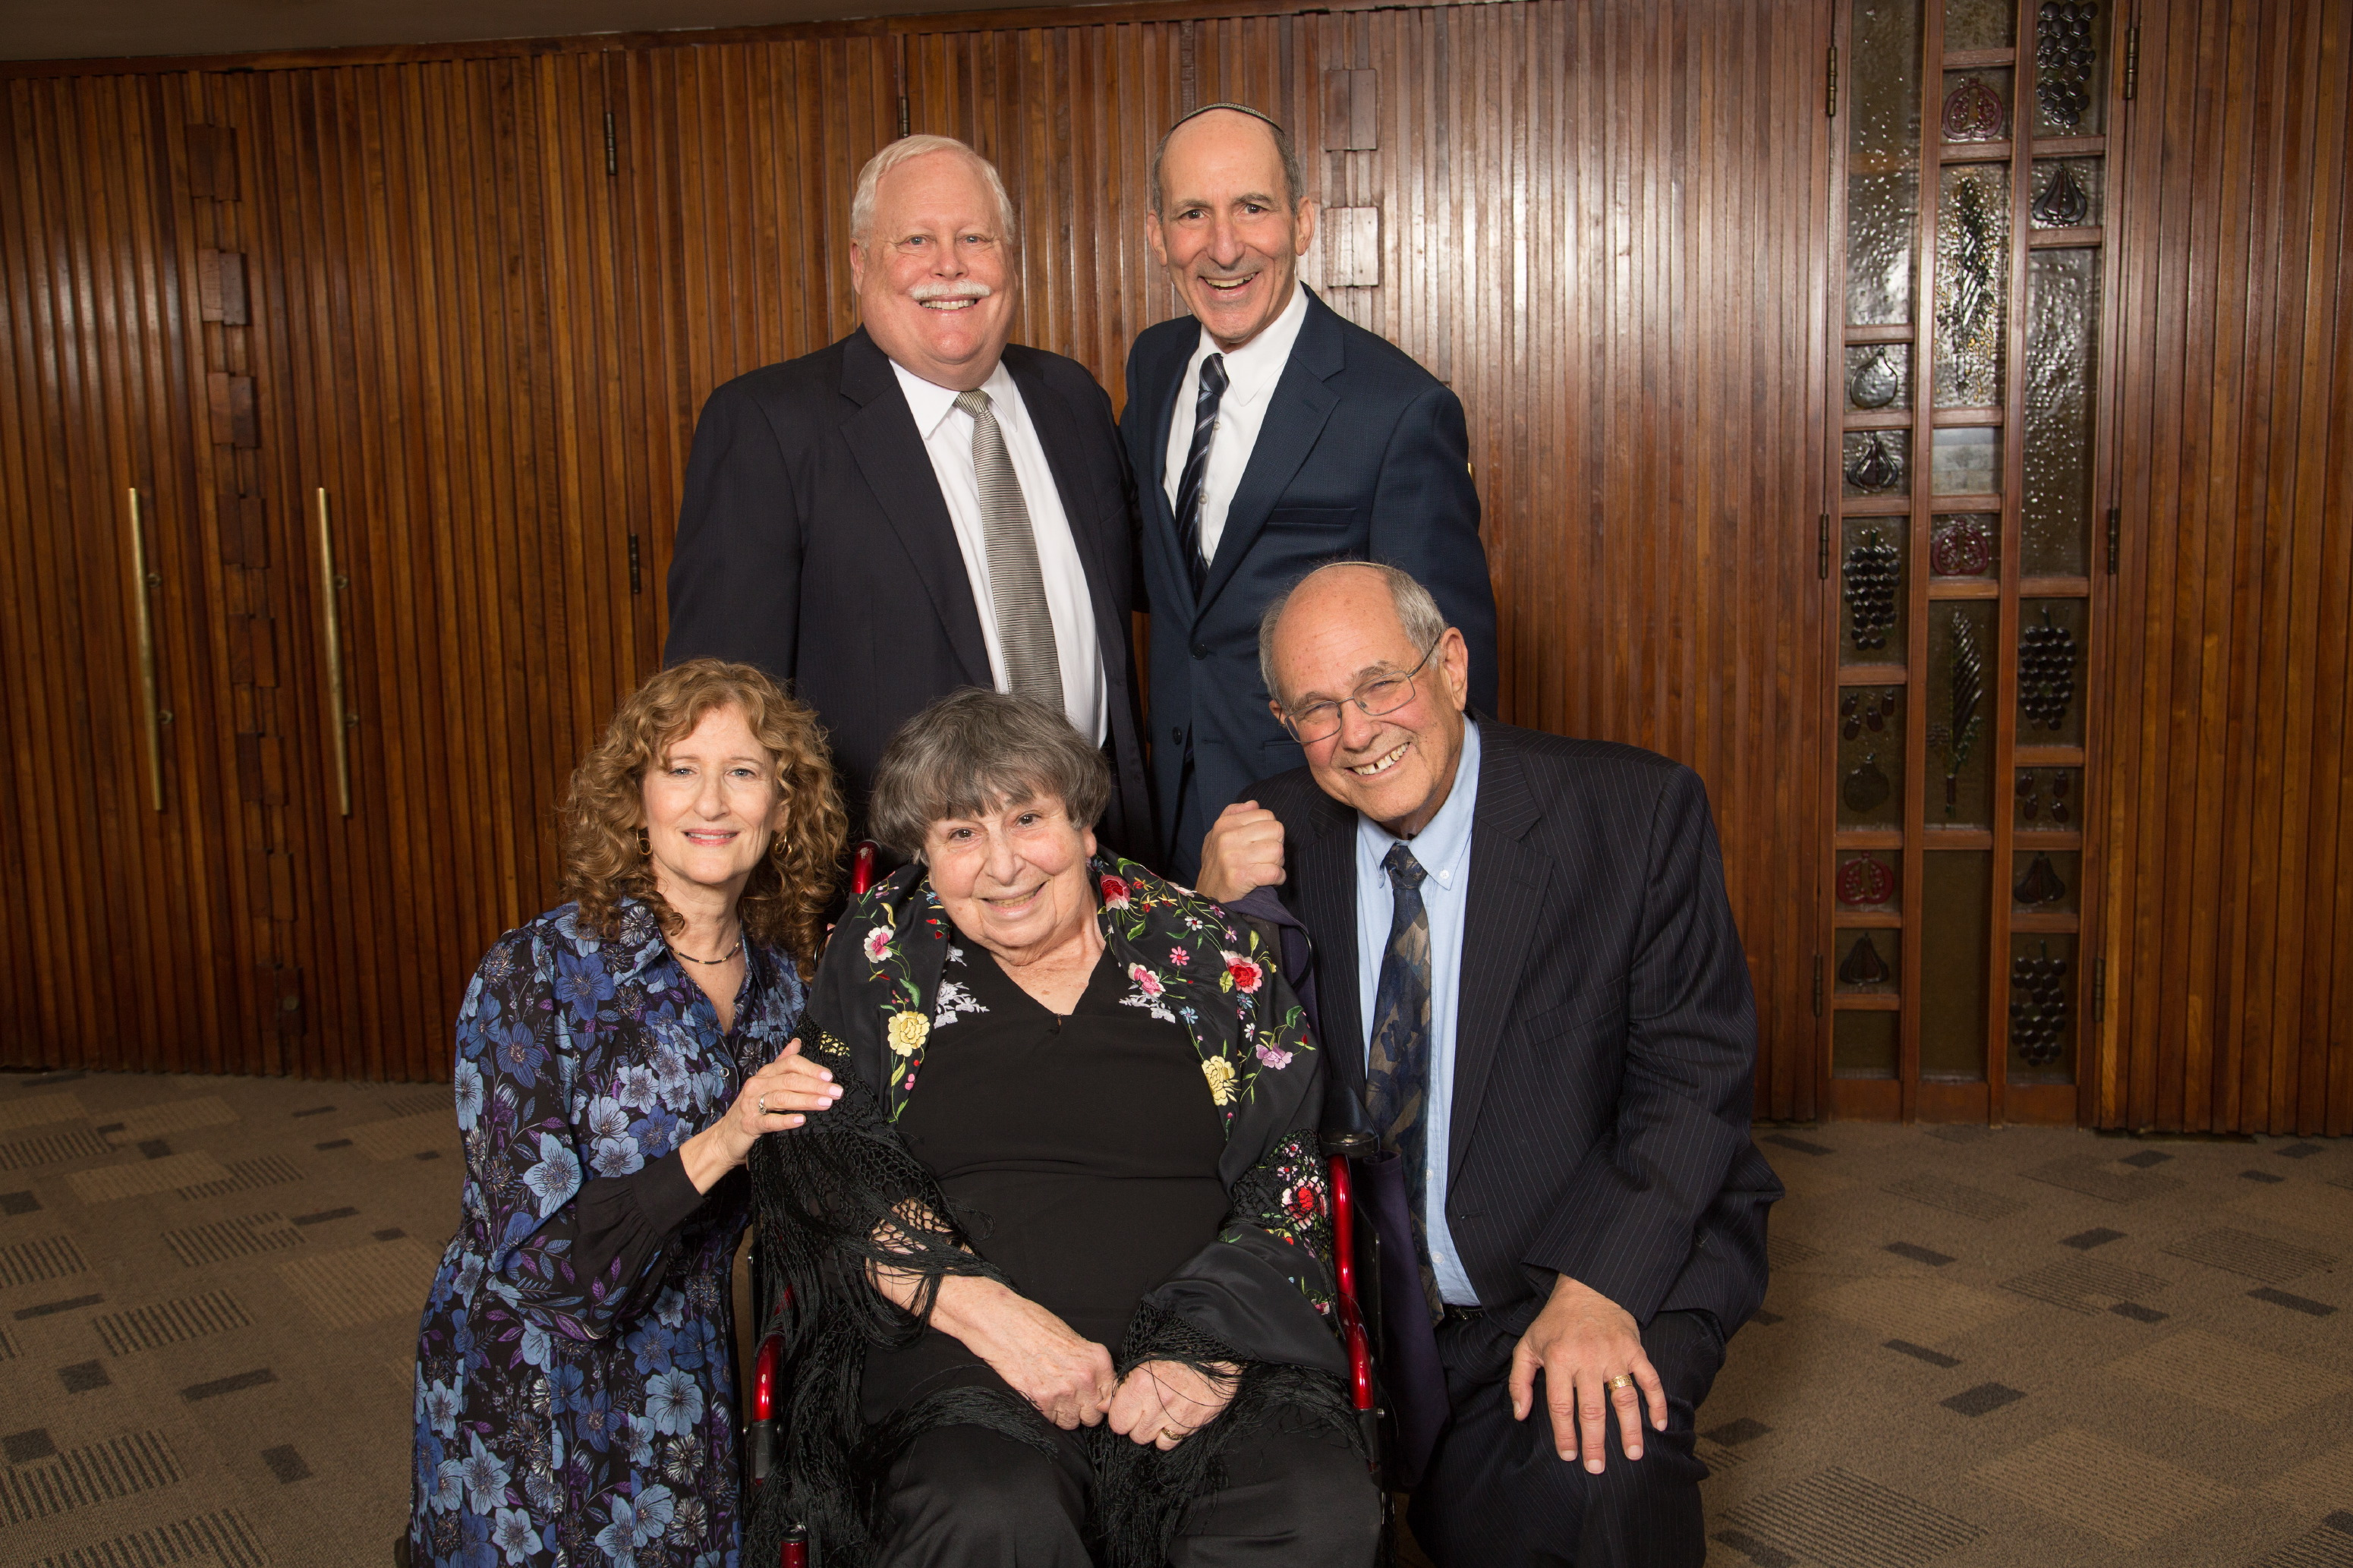 Left to right: Gala Chair Susan Jacoby Stern, BJE President Mark Berns, Honoree Marlynn Dorff, BJE Executive Director Dr. Gil Graff and Honoree Rabbi Elliot Dorff